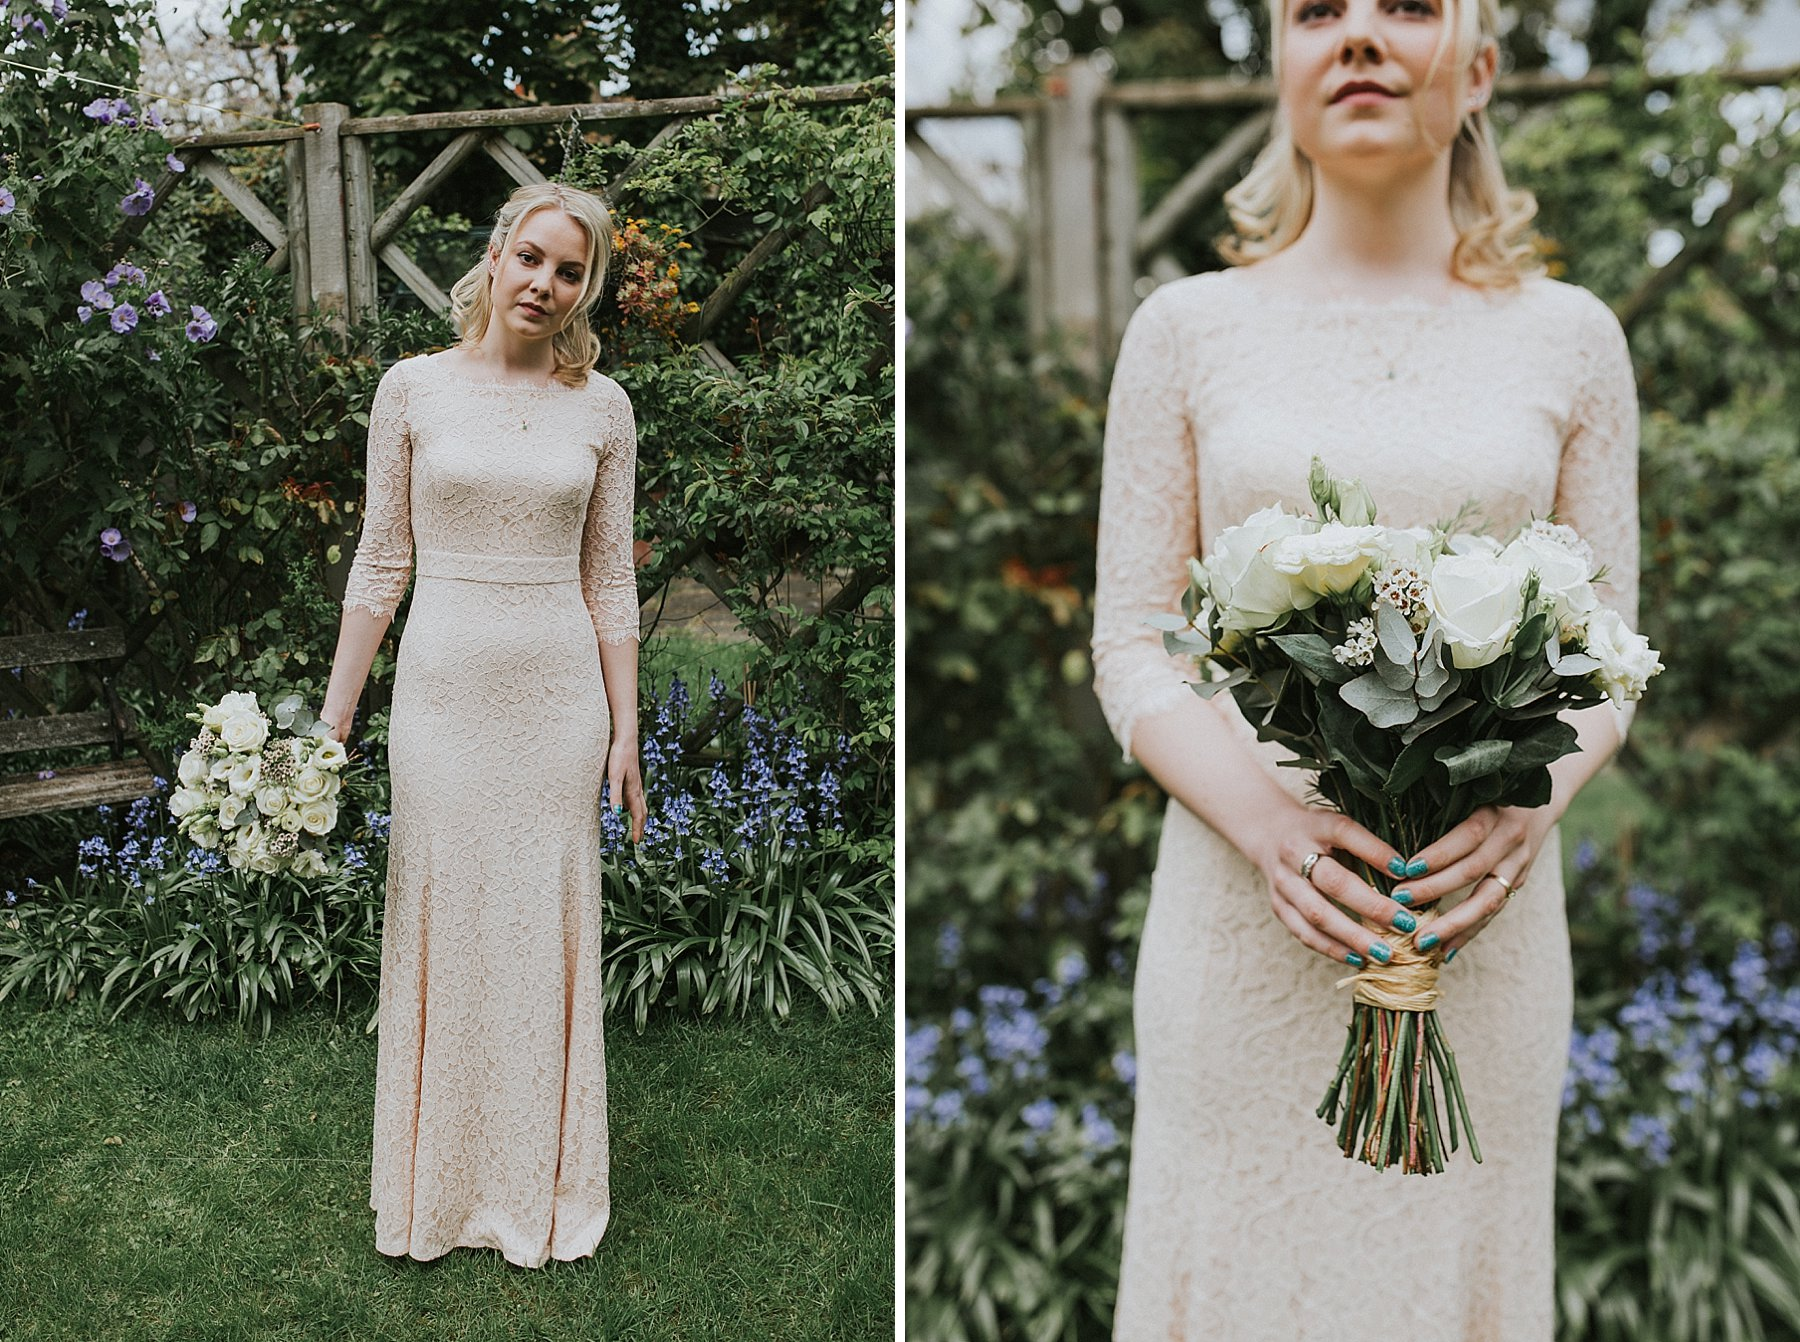 LD-79_Metro-Clapham-Common-wedding-photographer-London-blush-Diane-Von-Furstenburg-wedding-dress.jpg